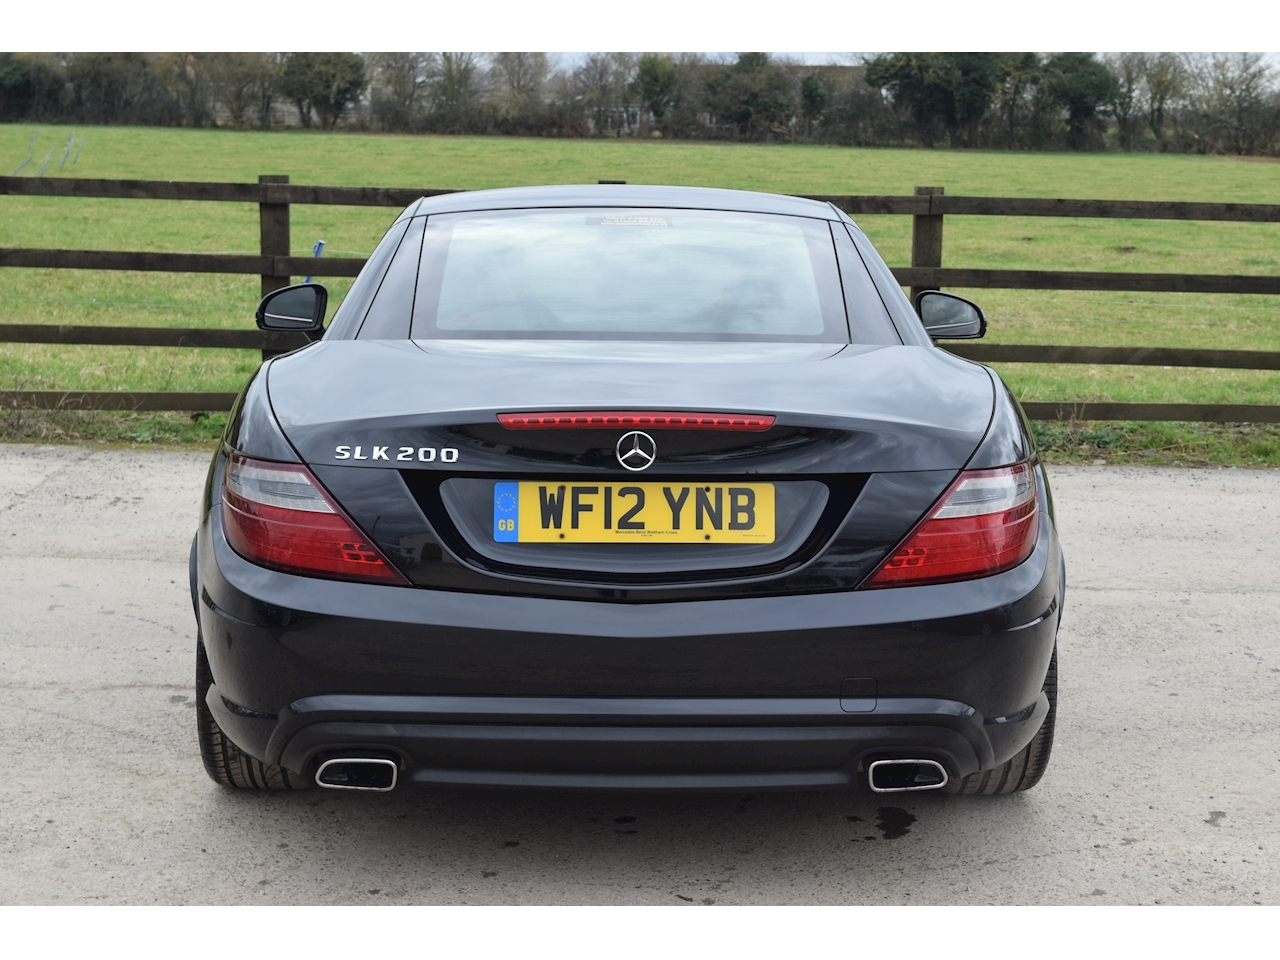 Mercedes-Benz 1.8 SLK200 BlueEFFICIENCY AMG Sport Convertible 2dr Petrol 7G-Tronic Plus (151 g/km, 184 bhp)